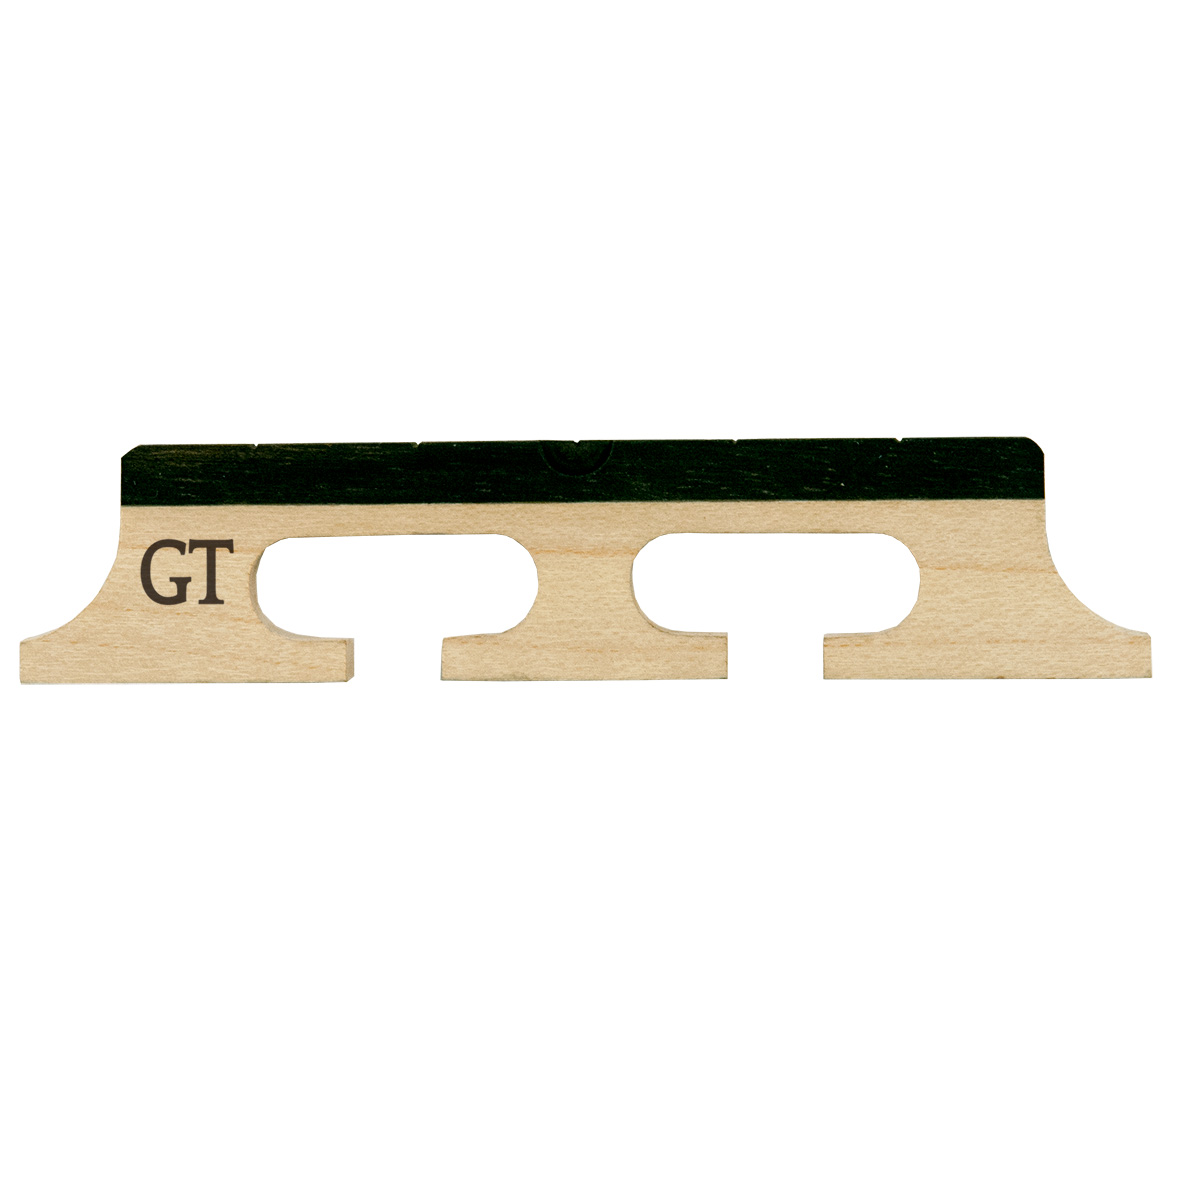 5-String B-Ball Banjo Bridge